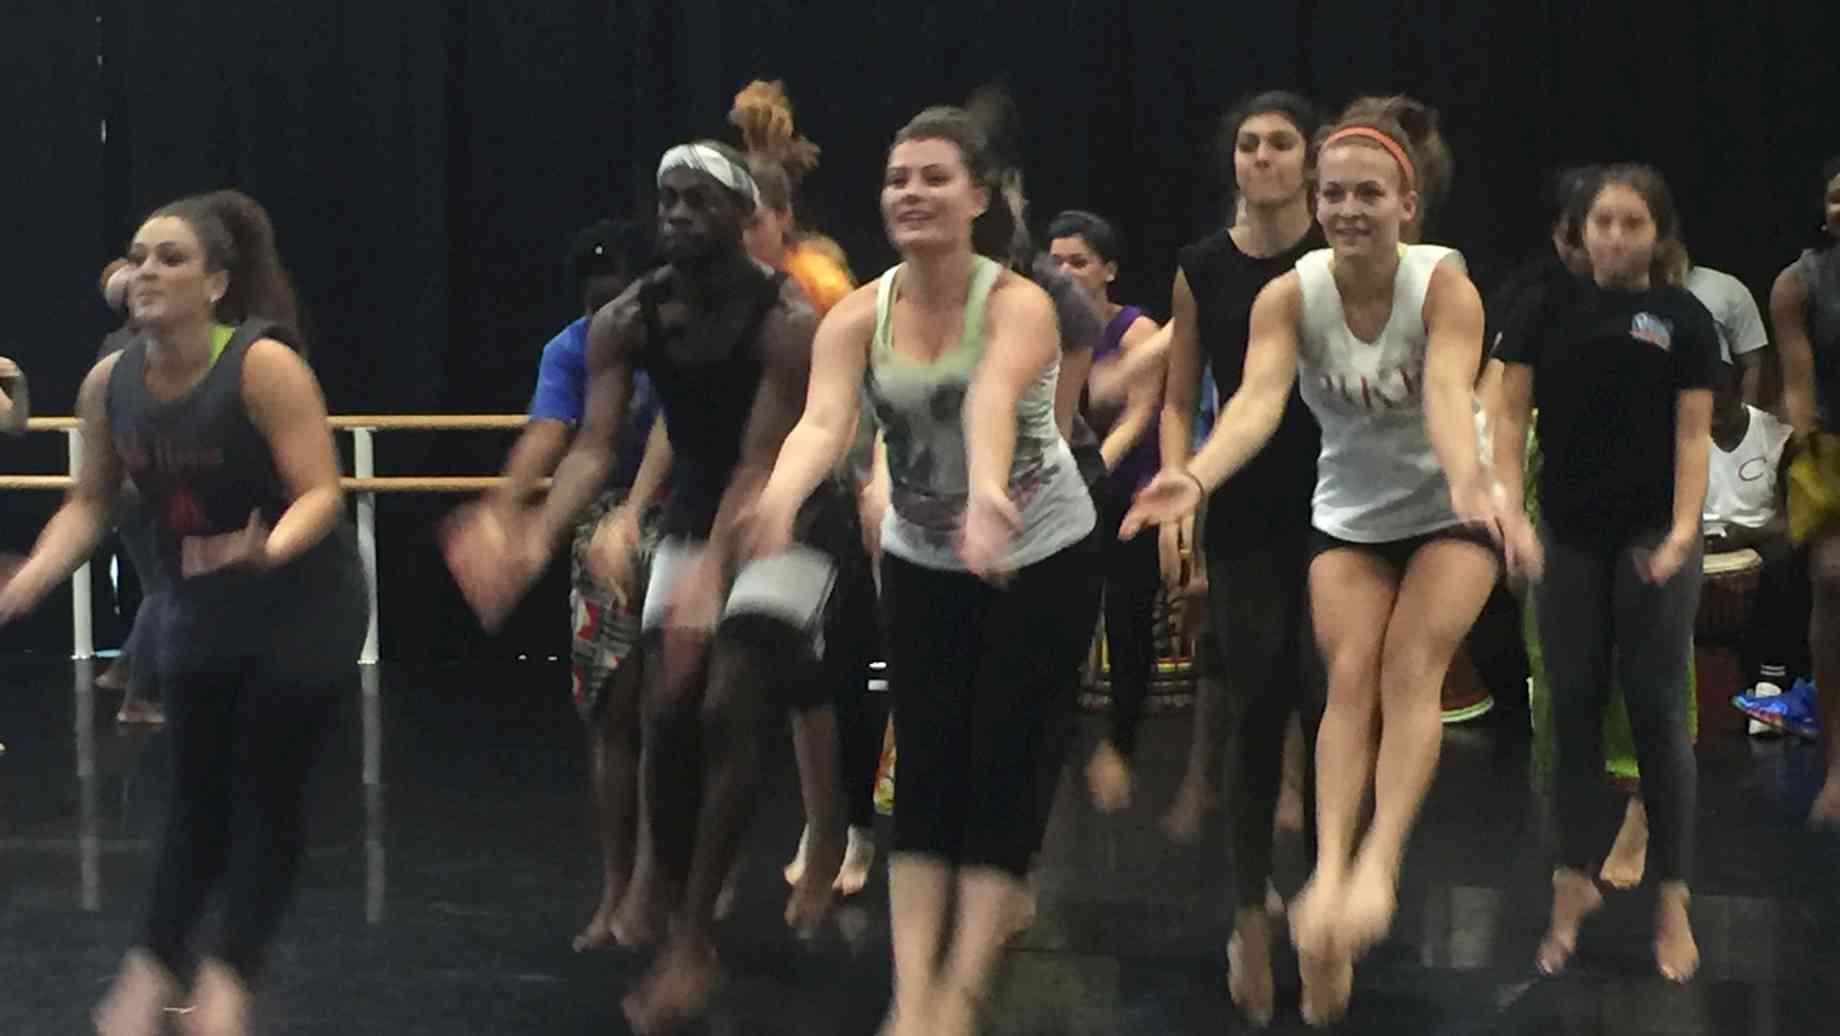 West African Dance students being instructed by Juliana Azoubel during her Guest Artist residency at UF in Fall 2016.